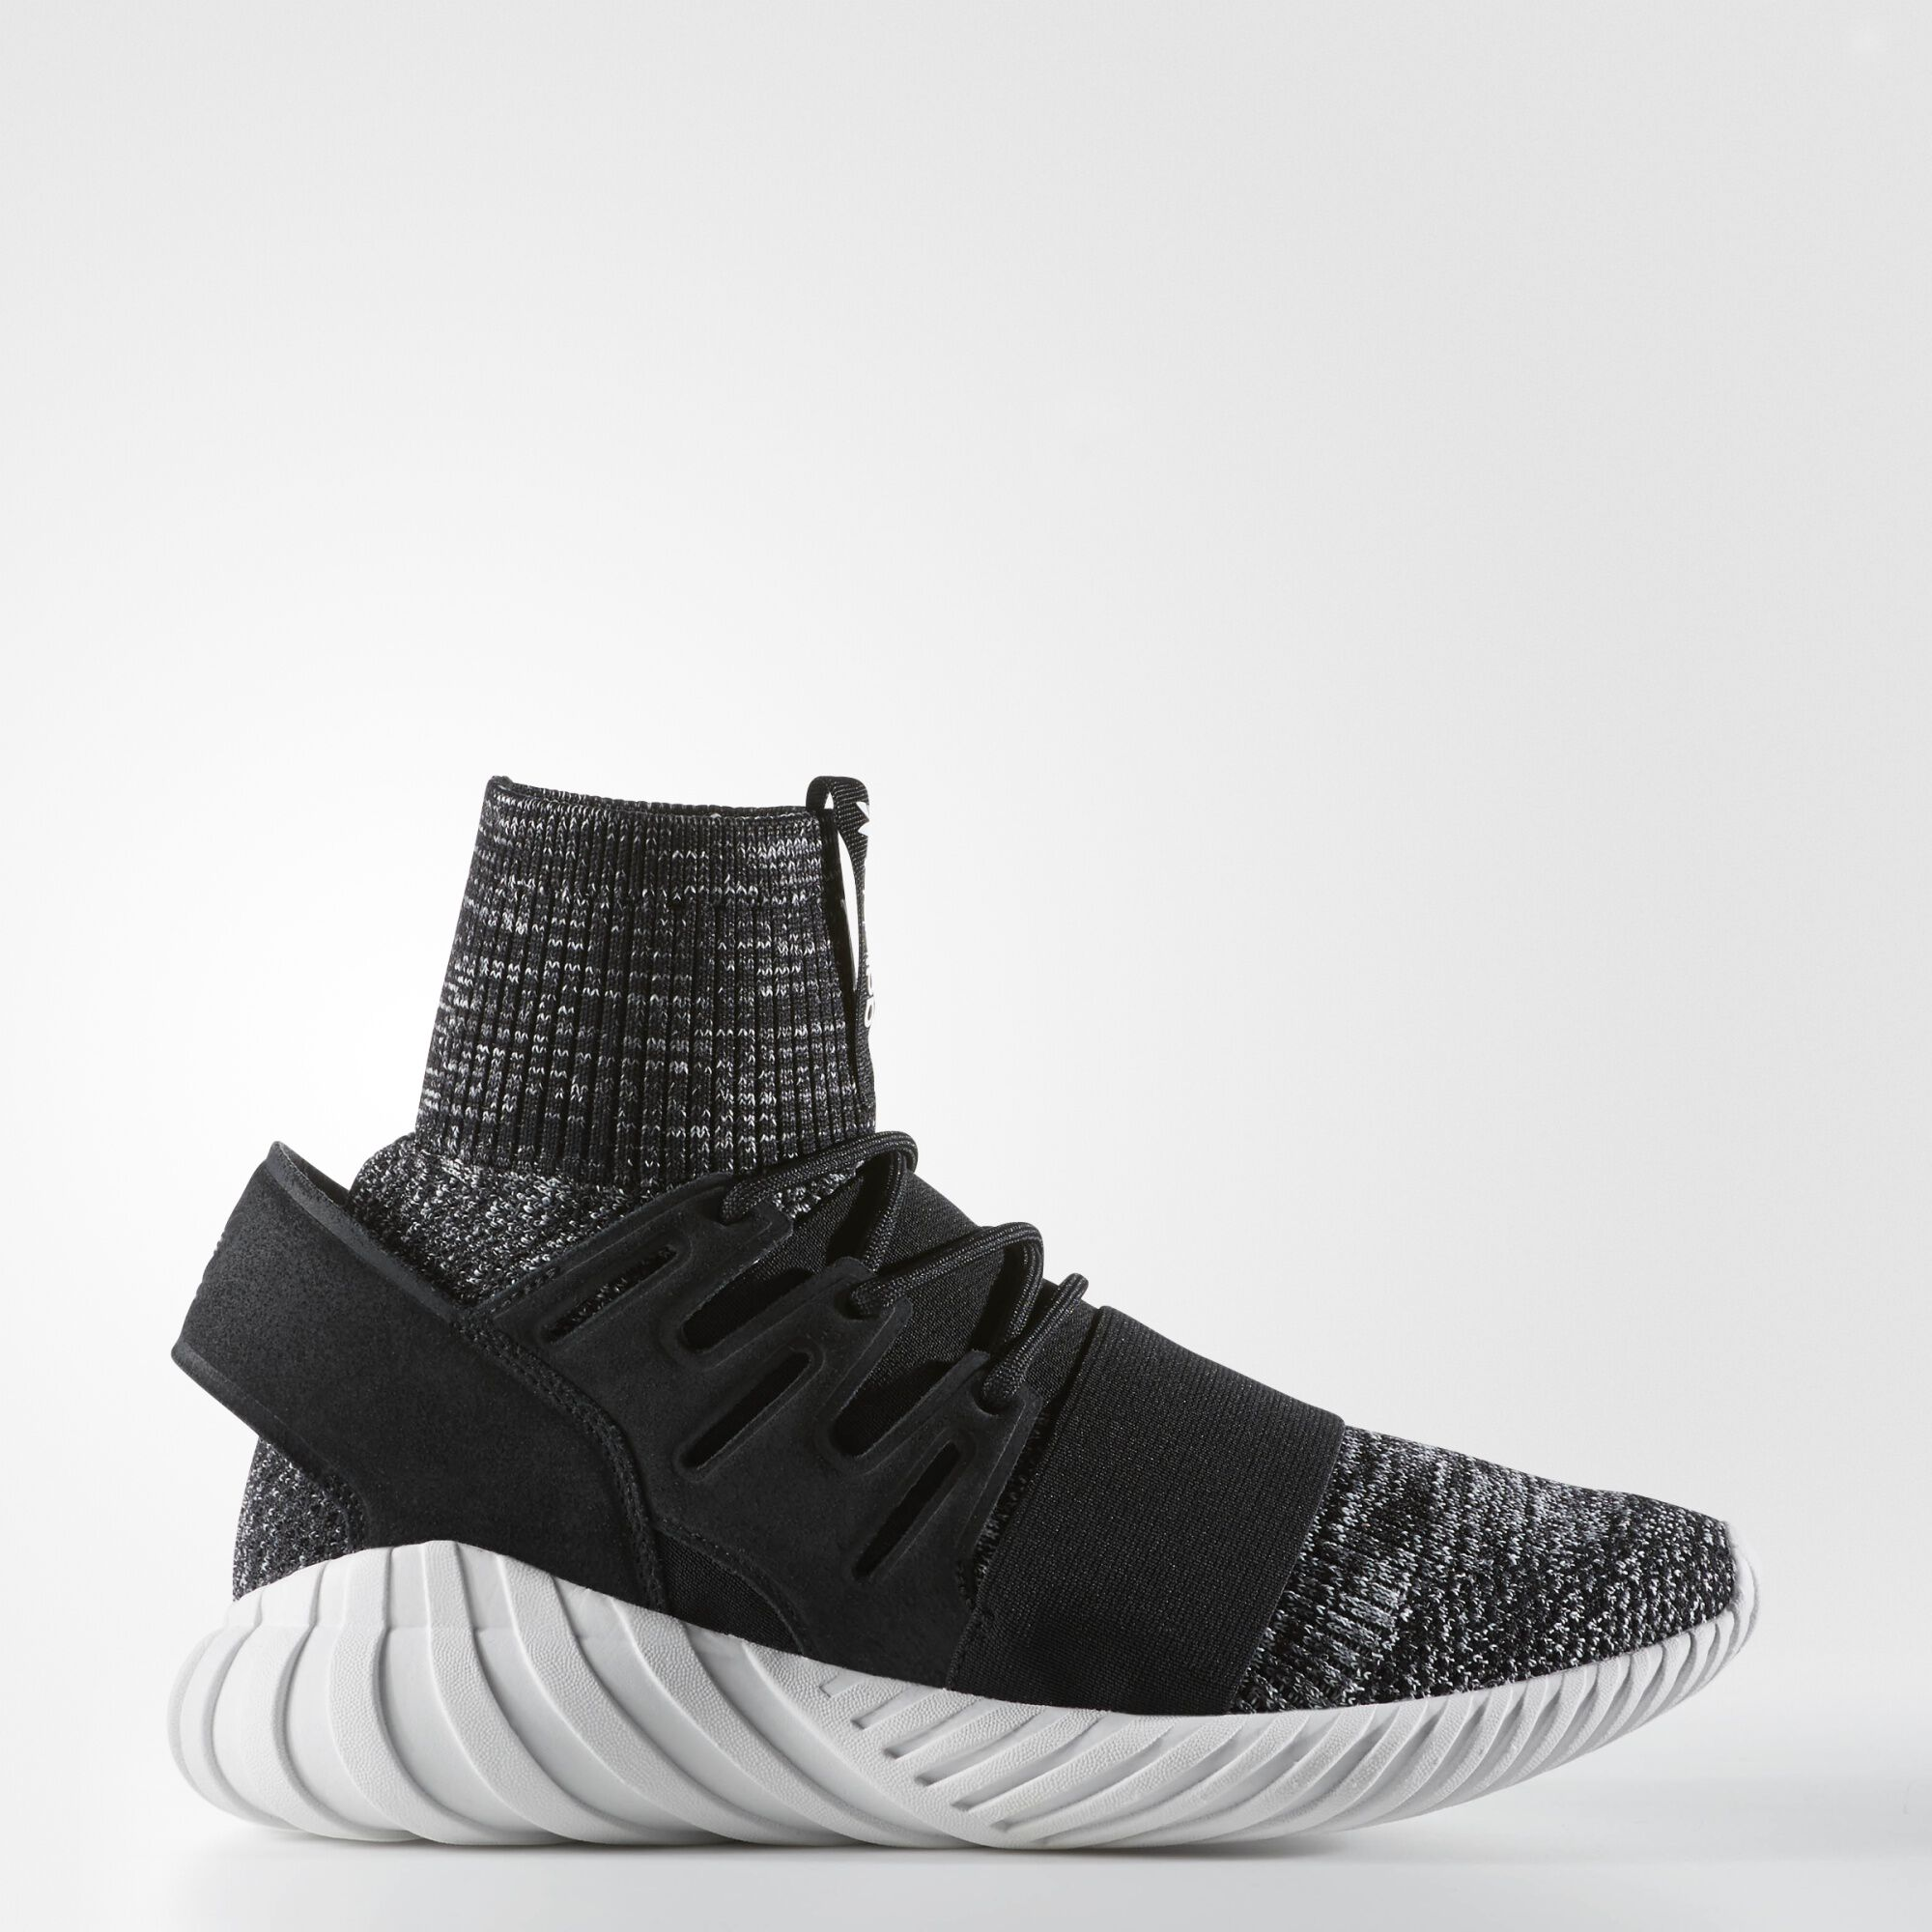 Adidas Tubular Doom Primeknit 'Night Marine'